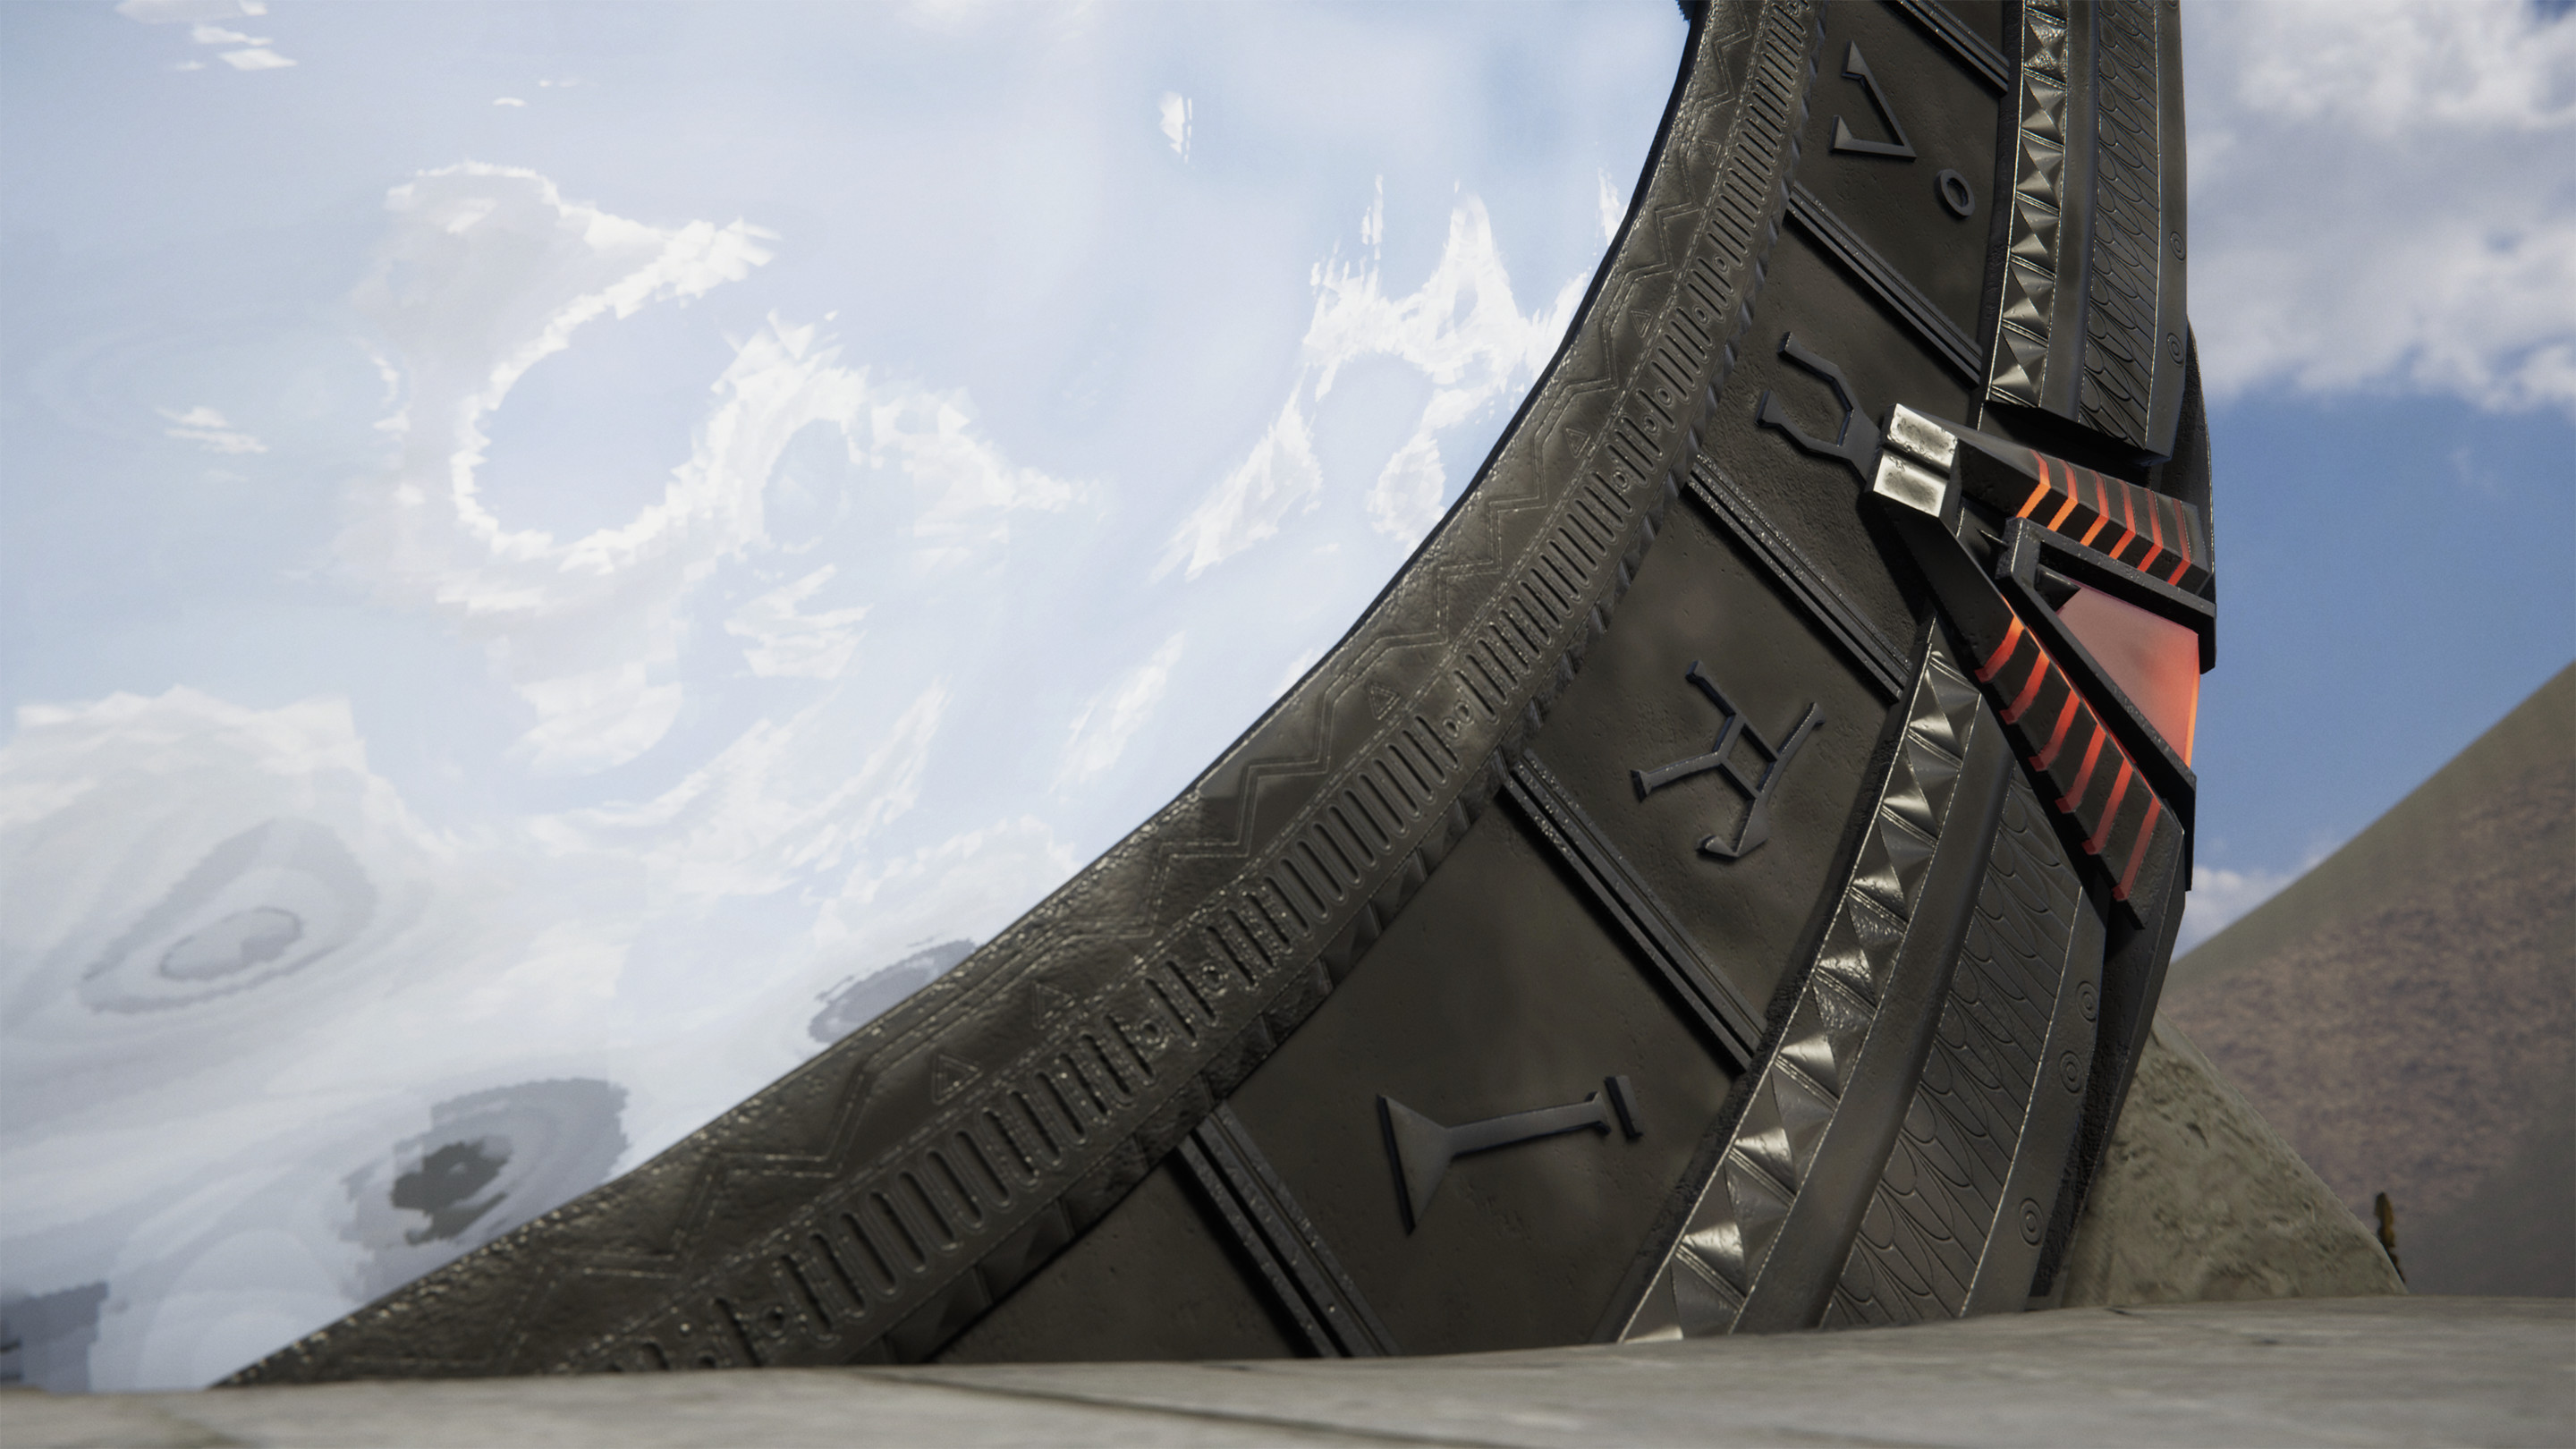 My Stargate model has been designed detail by detail to accurately reflect the design from the Stargate SG-1 models